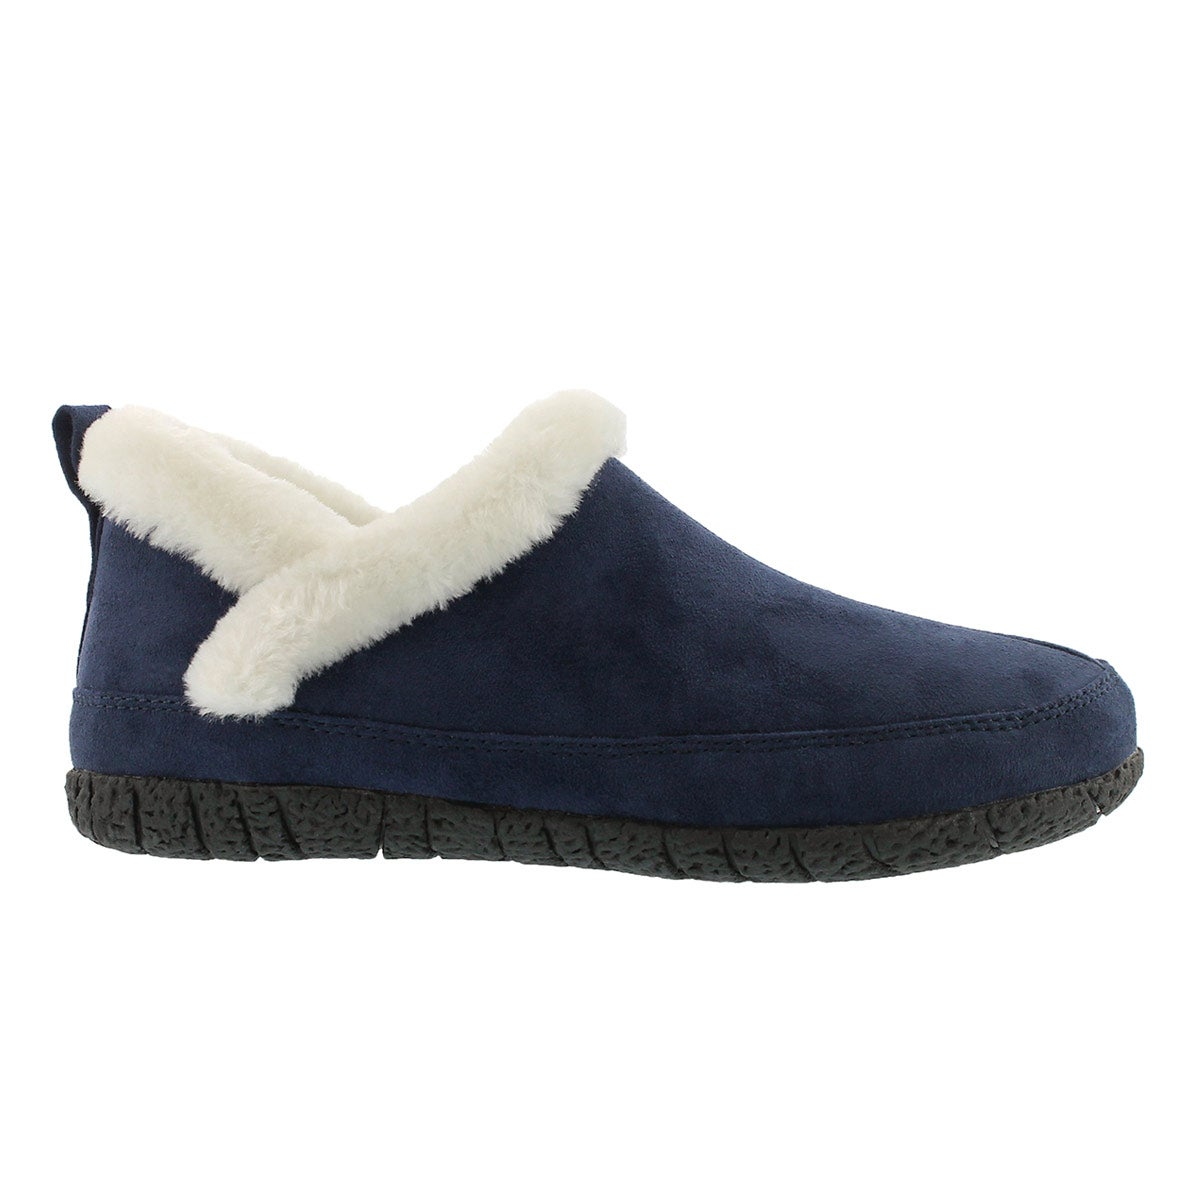 Lds Ruby 2 navy closed back slipper